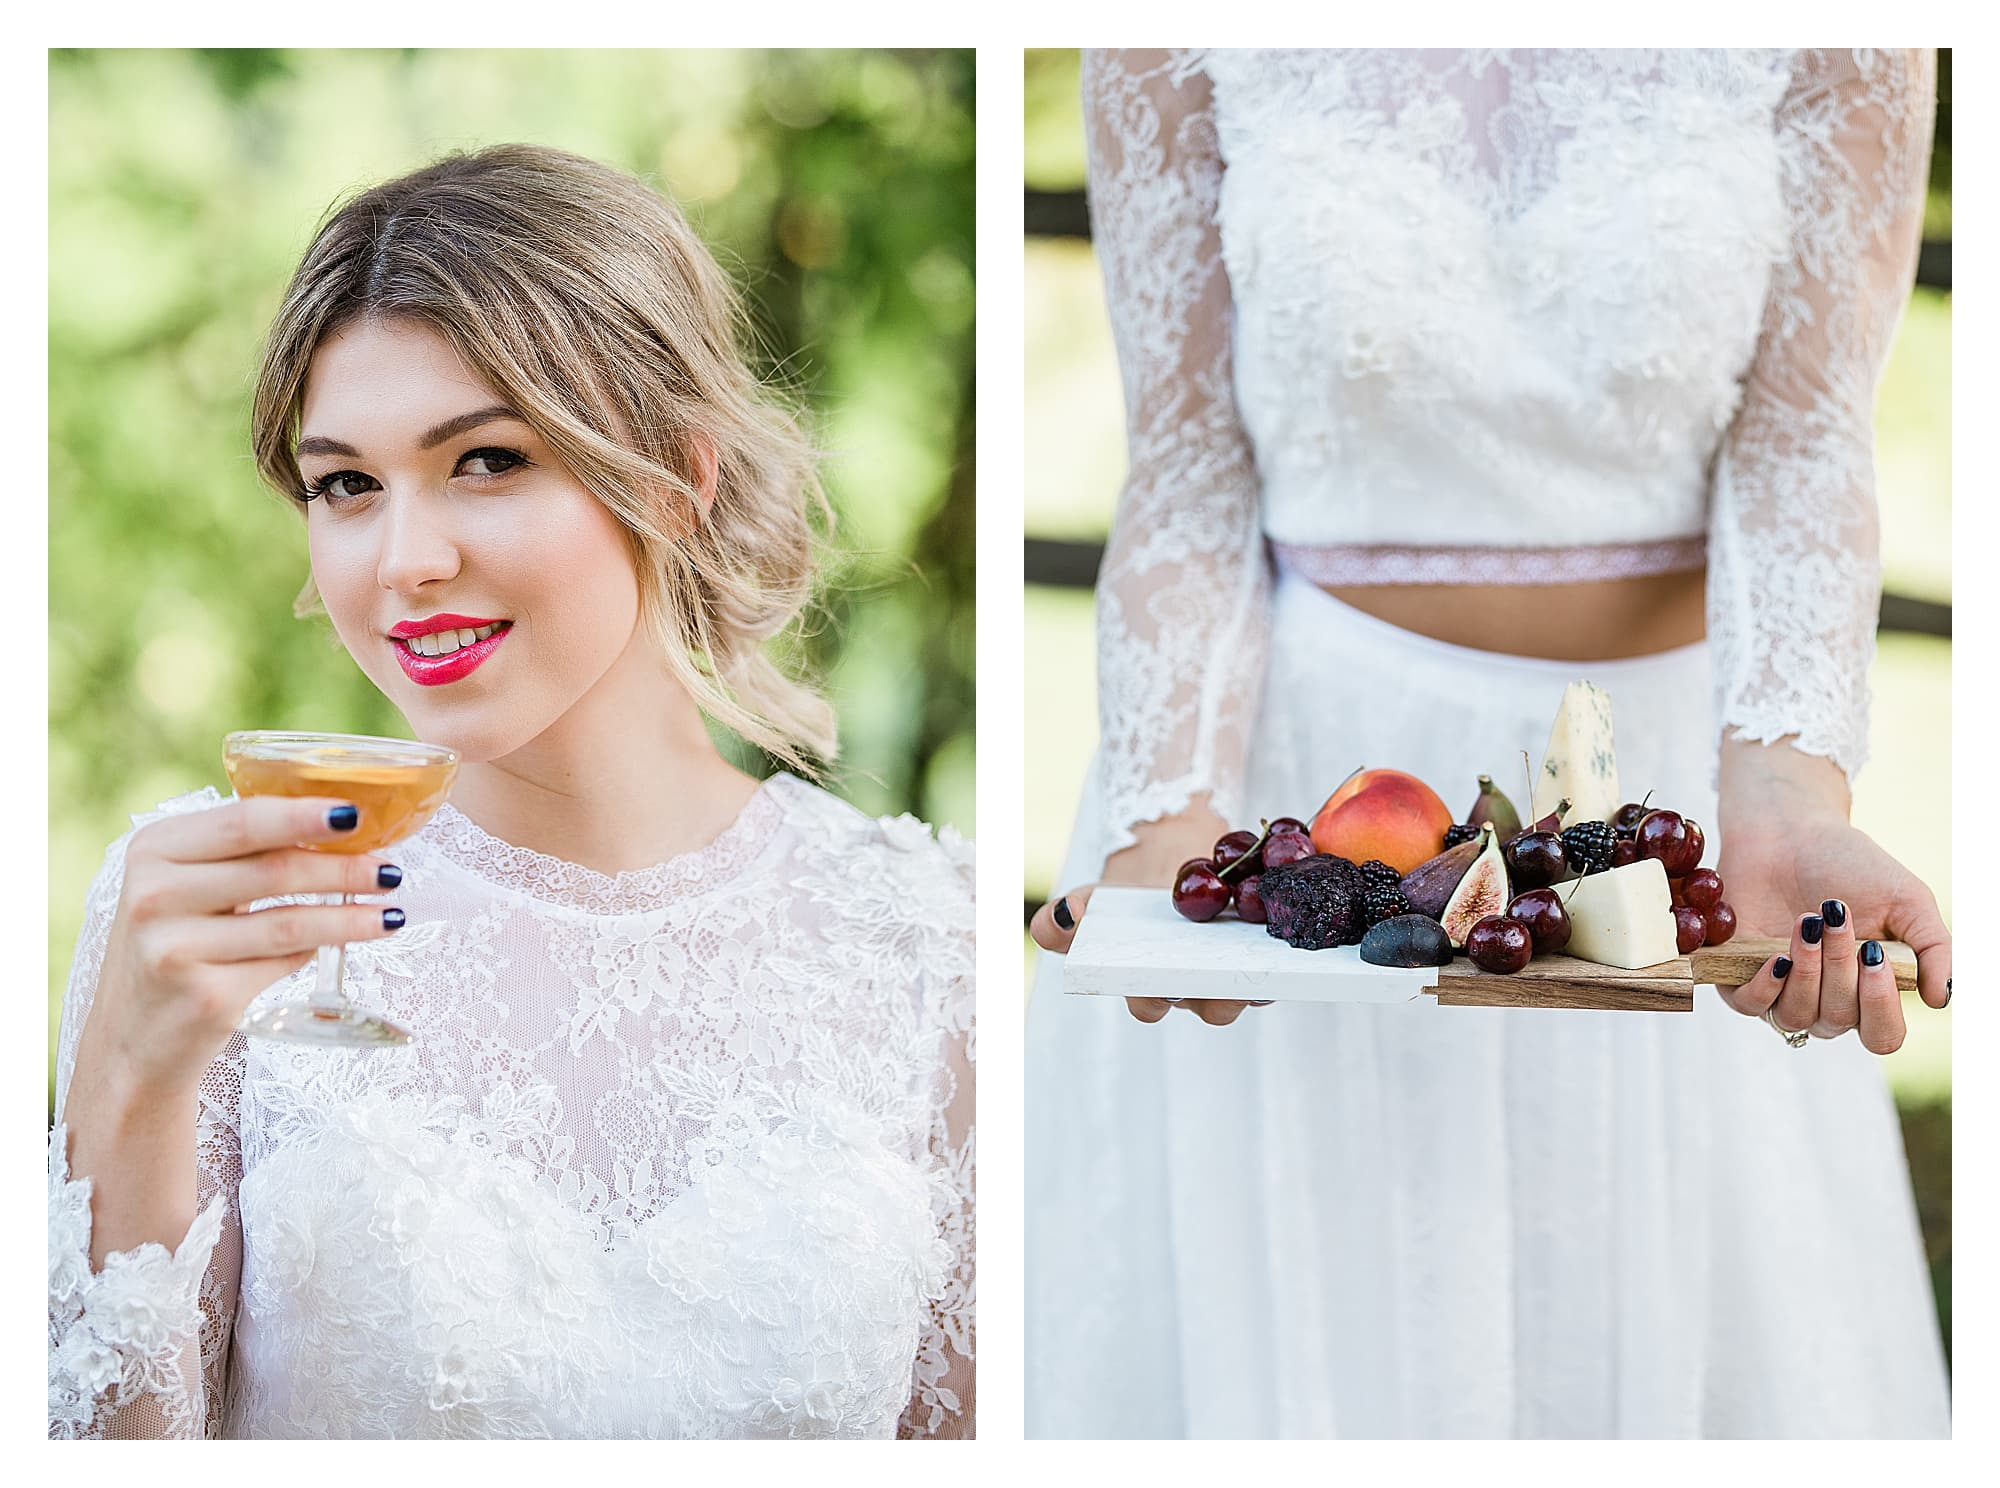 Bride wearing two piece white lace wedding dress sipping cocktail smiling